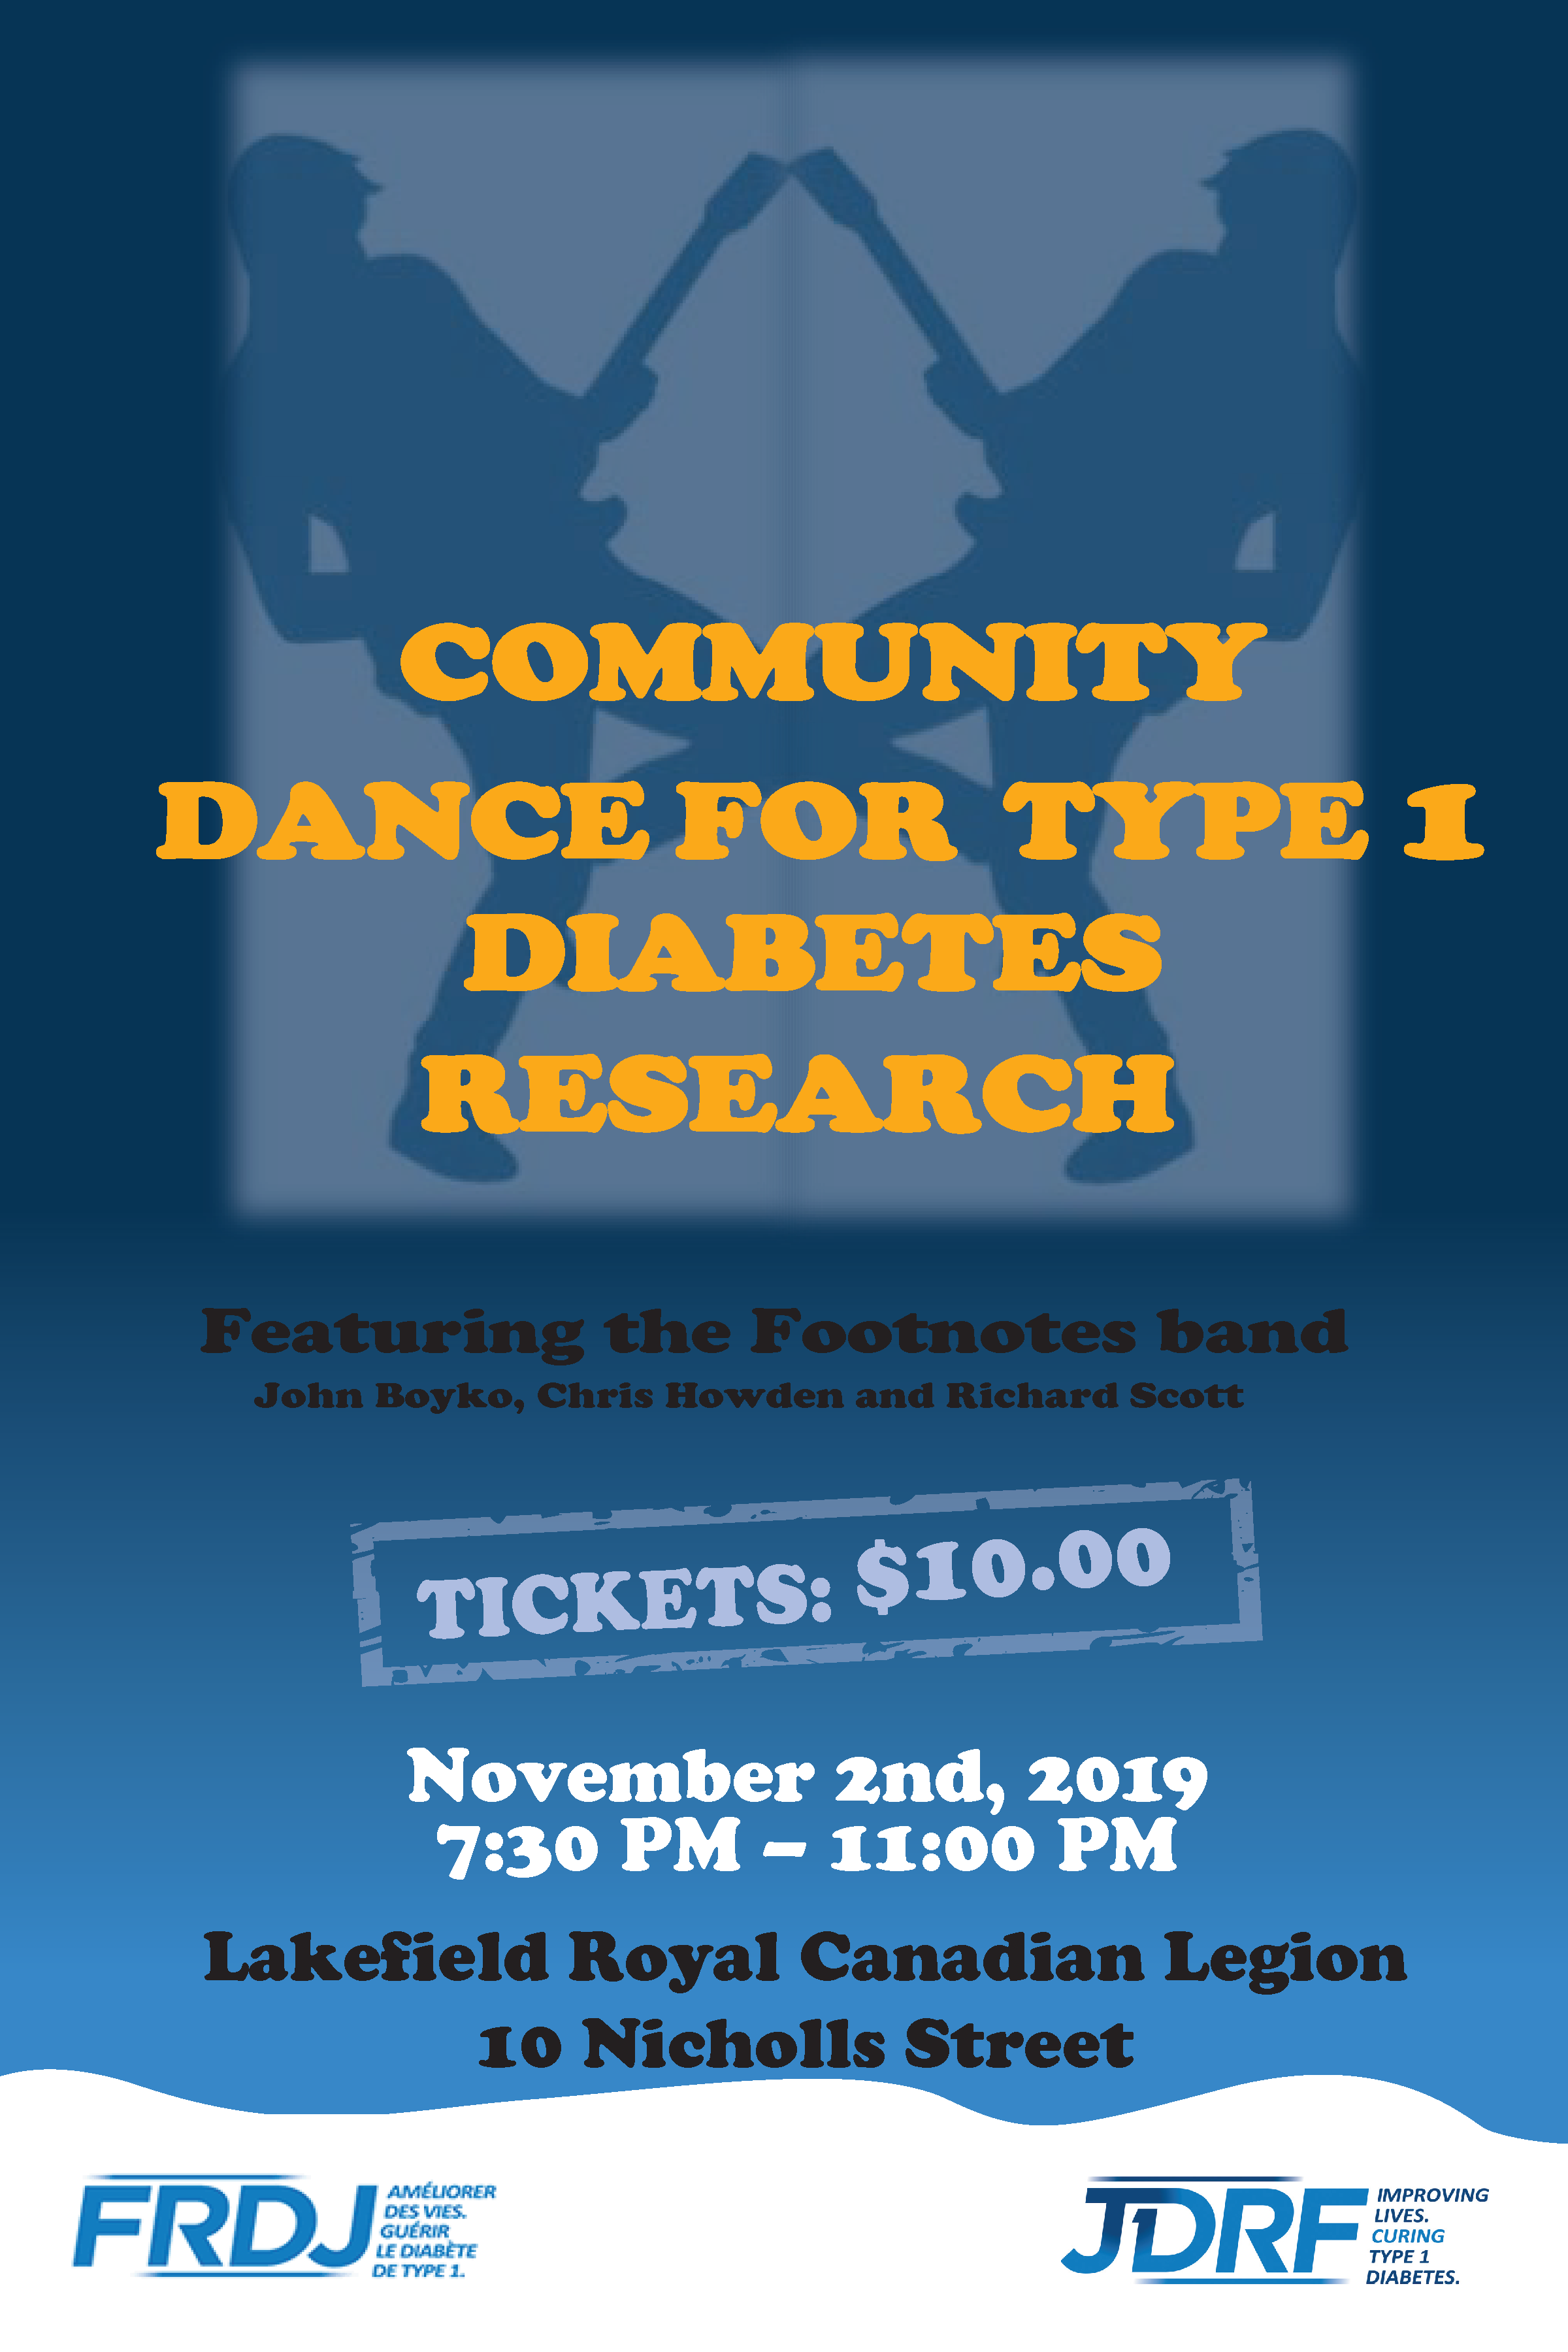 Community Dance for Type 1 Diabetes Research - November 2, 2019 copy